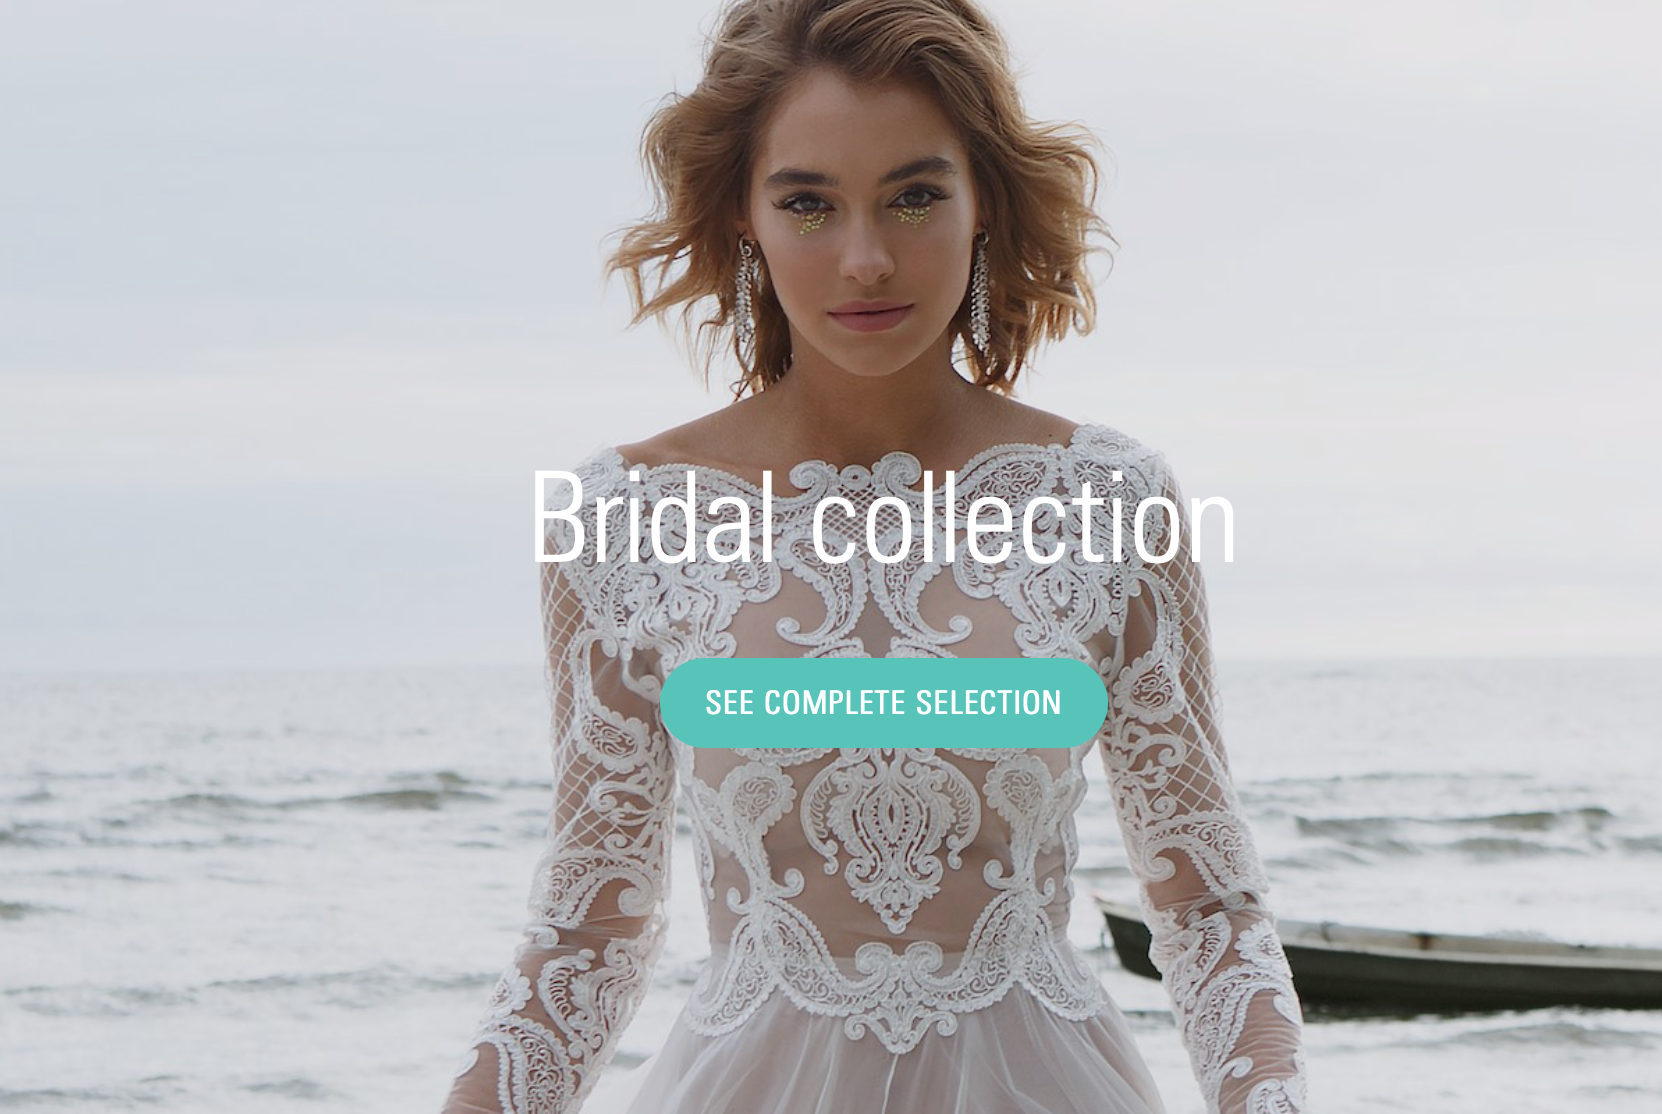 Bridal & Fashion brand for the modern, free spirited soul. - Designed in Norway.